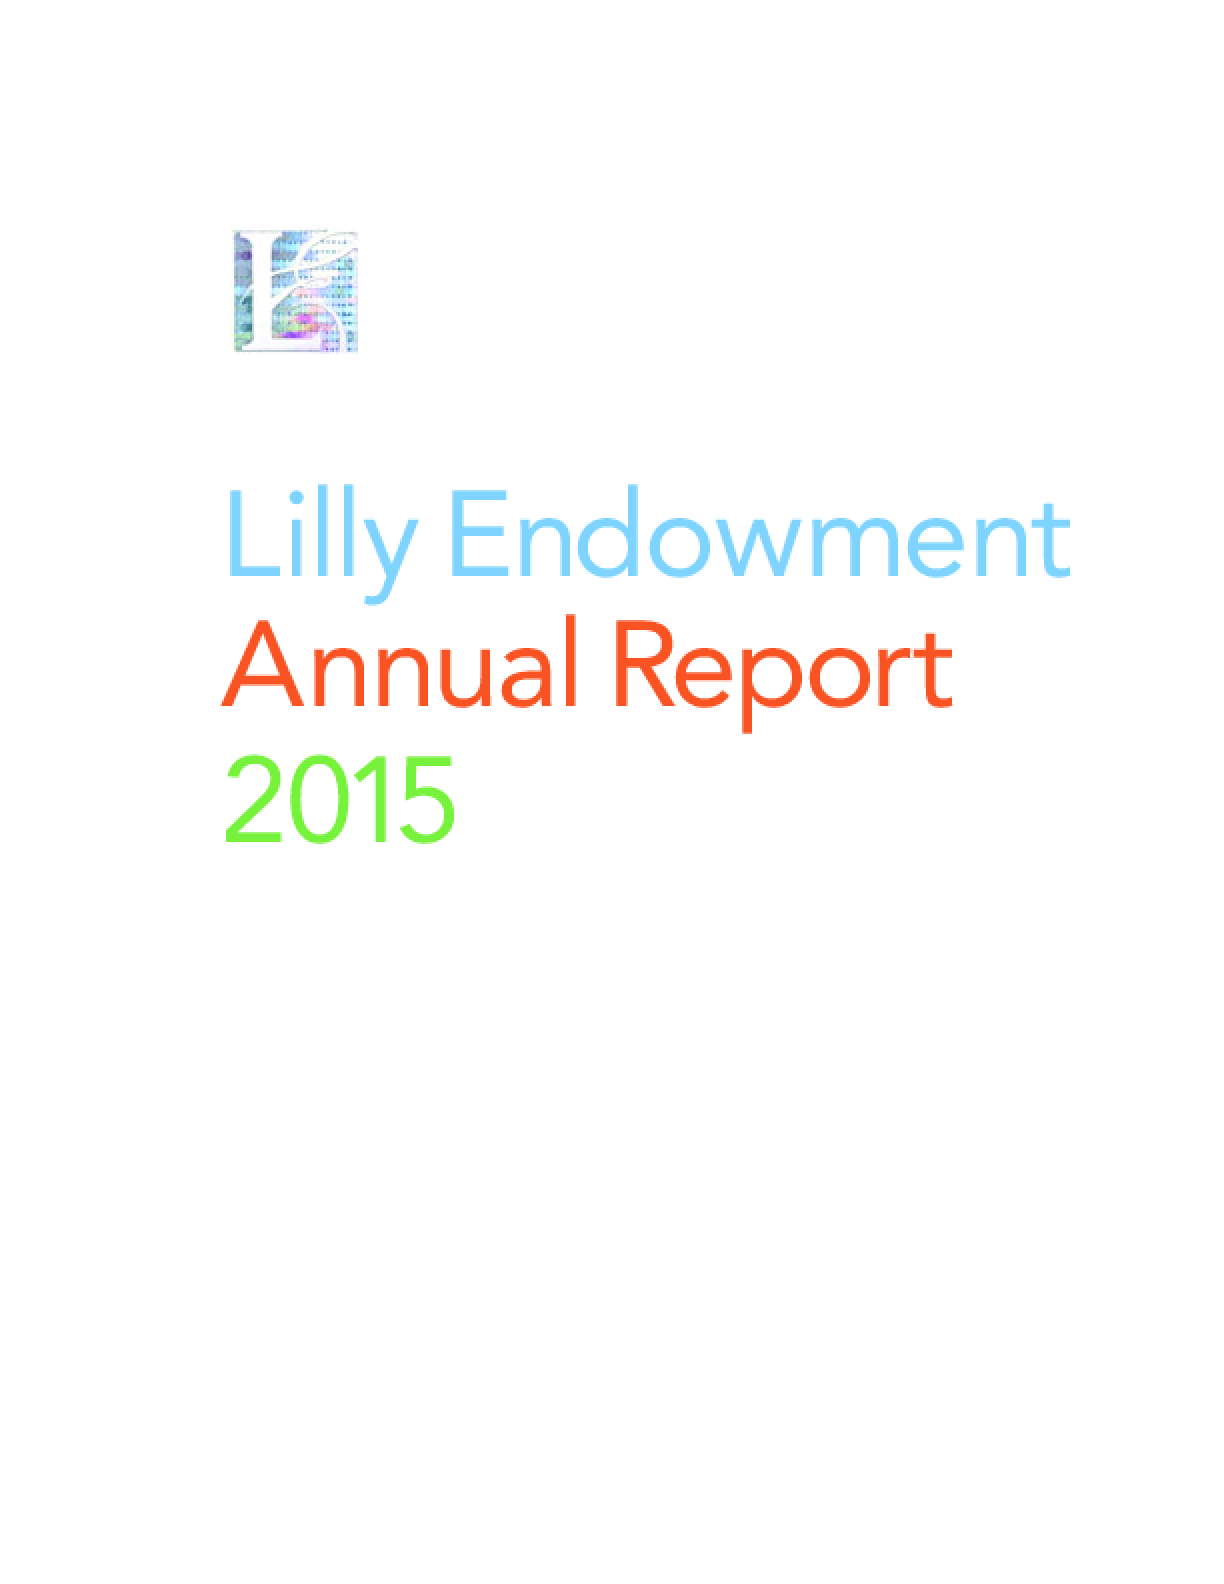 Lilly Endowment Annual Report 2015